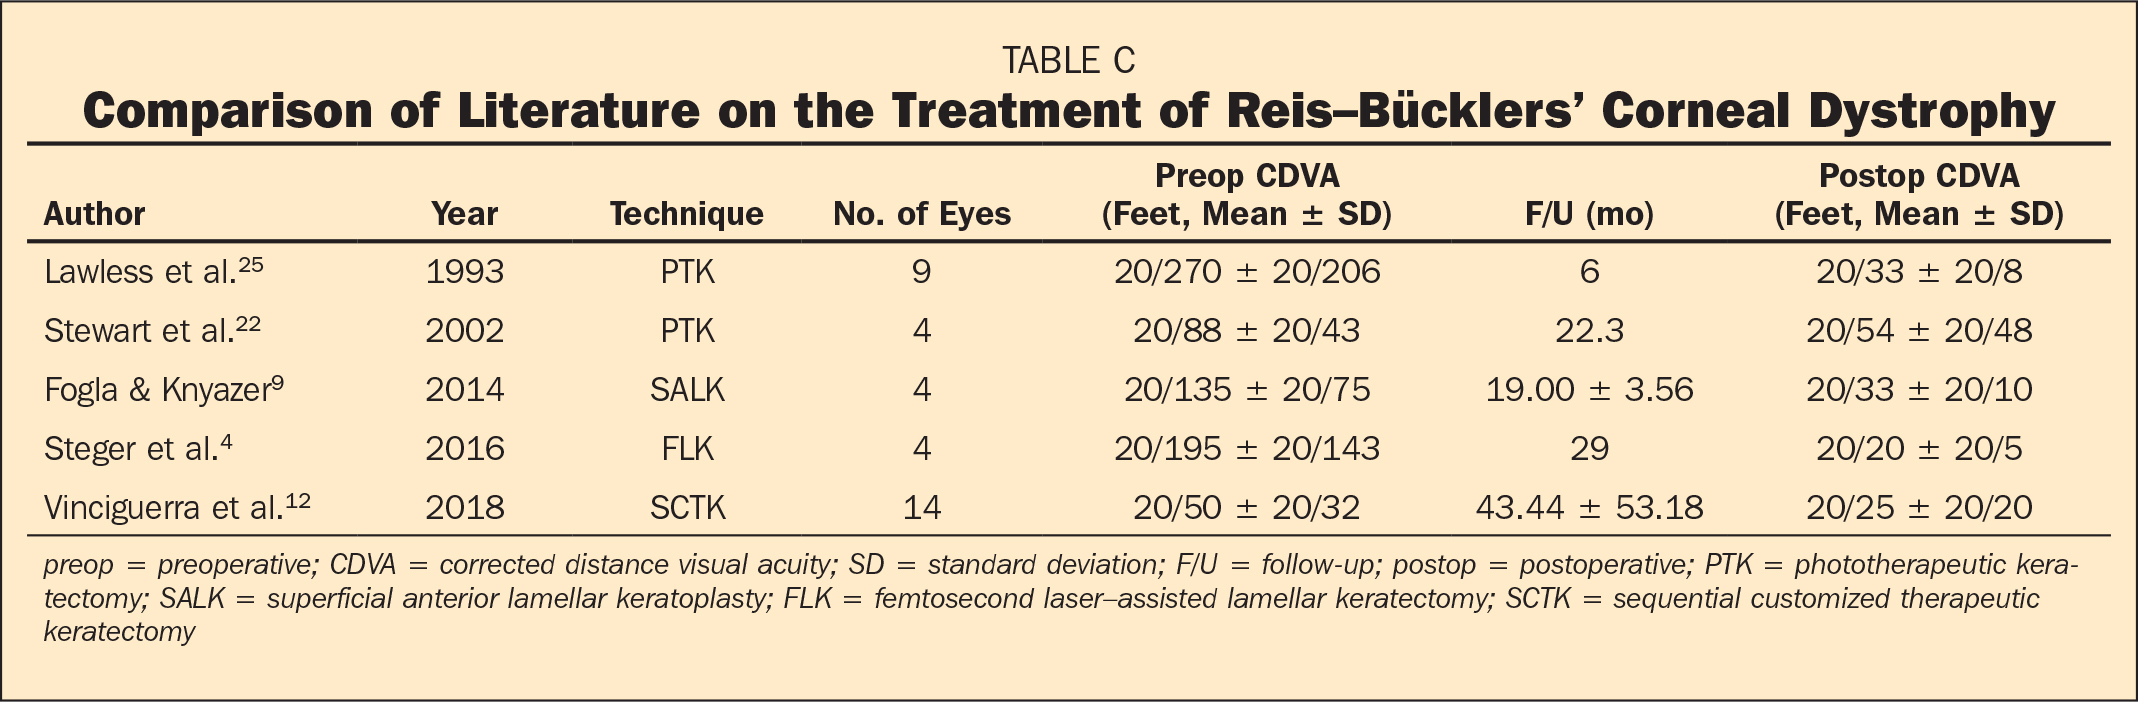 Comparison of Literature on the Treatment of Reis–Bücklers' Corneal Dystrophy